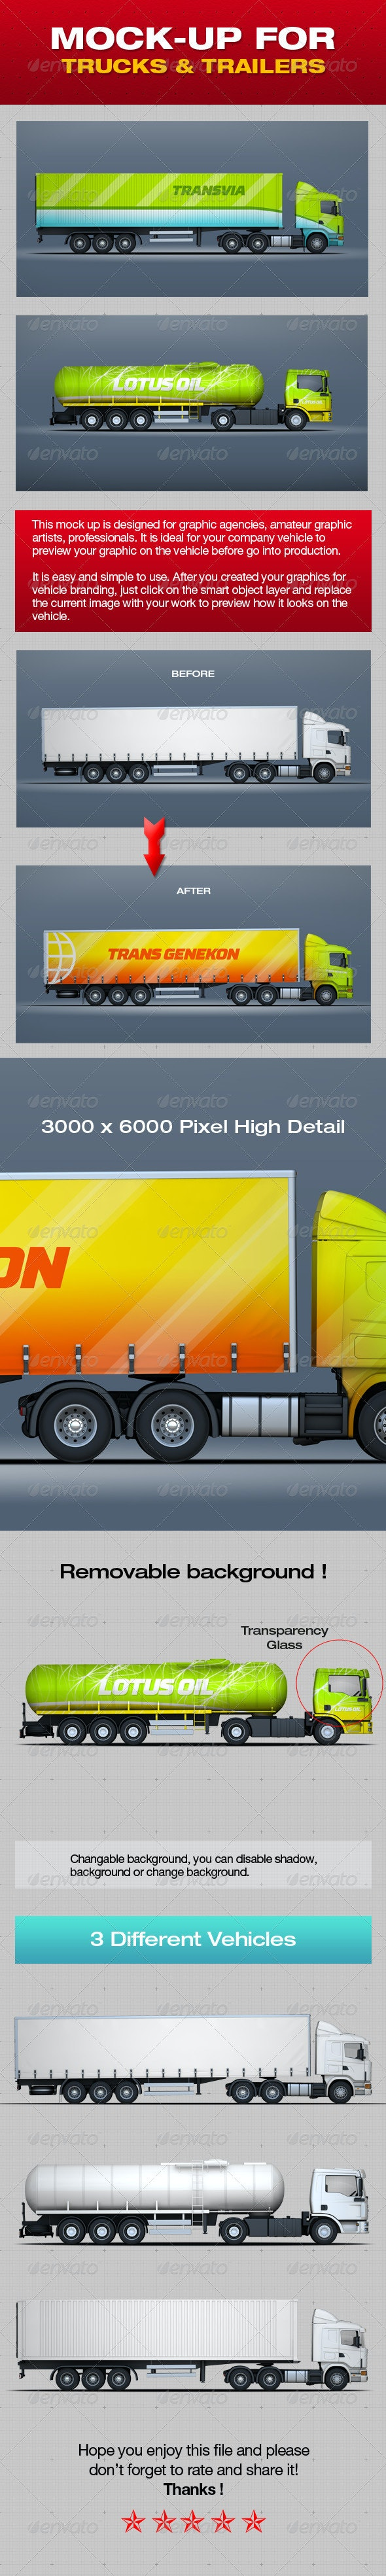 Mock-Up For Trucks & Trailers - Product Mock-Ups Graphics